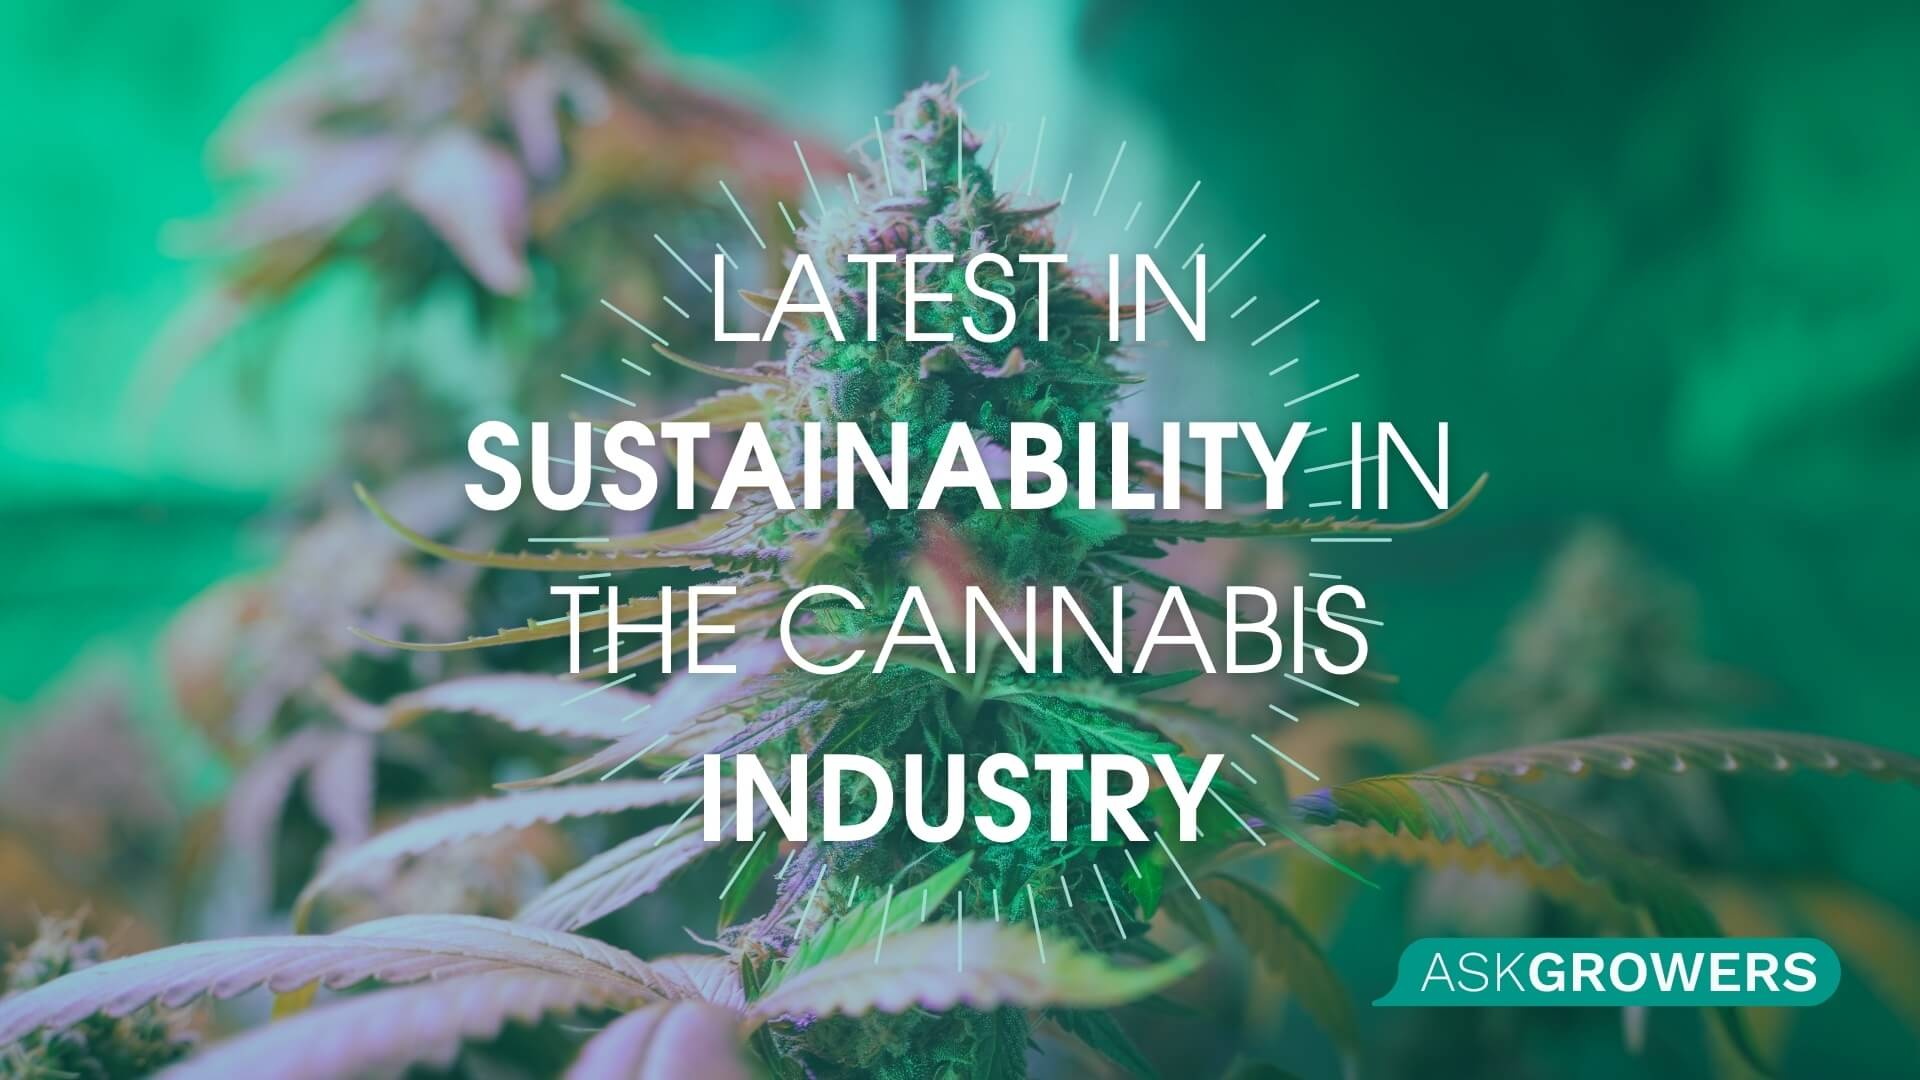 Latest in Sustainability in the Cannabis Industry: How the Cannabis Industry Stays Green, AskGrowers